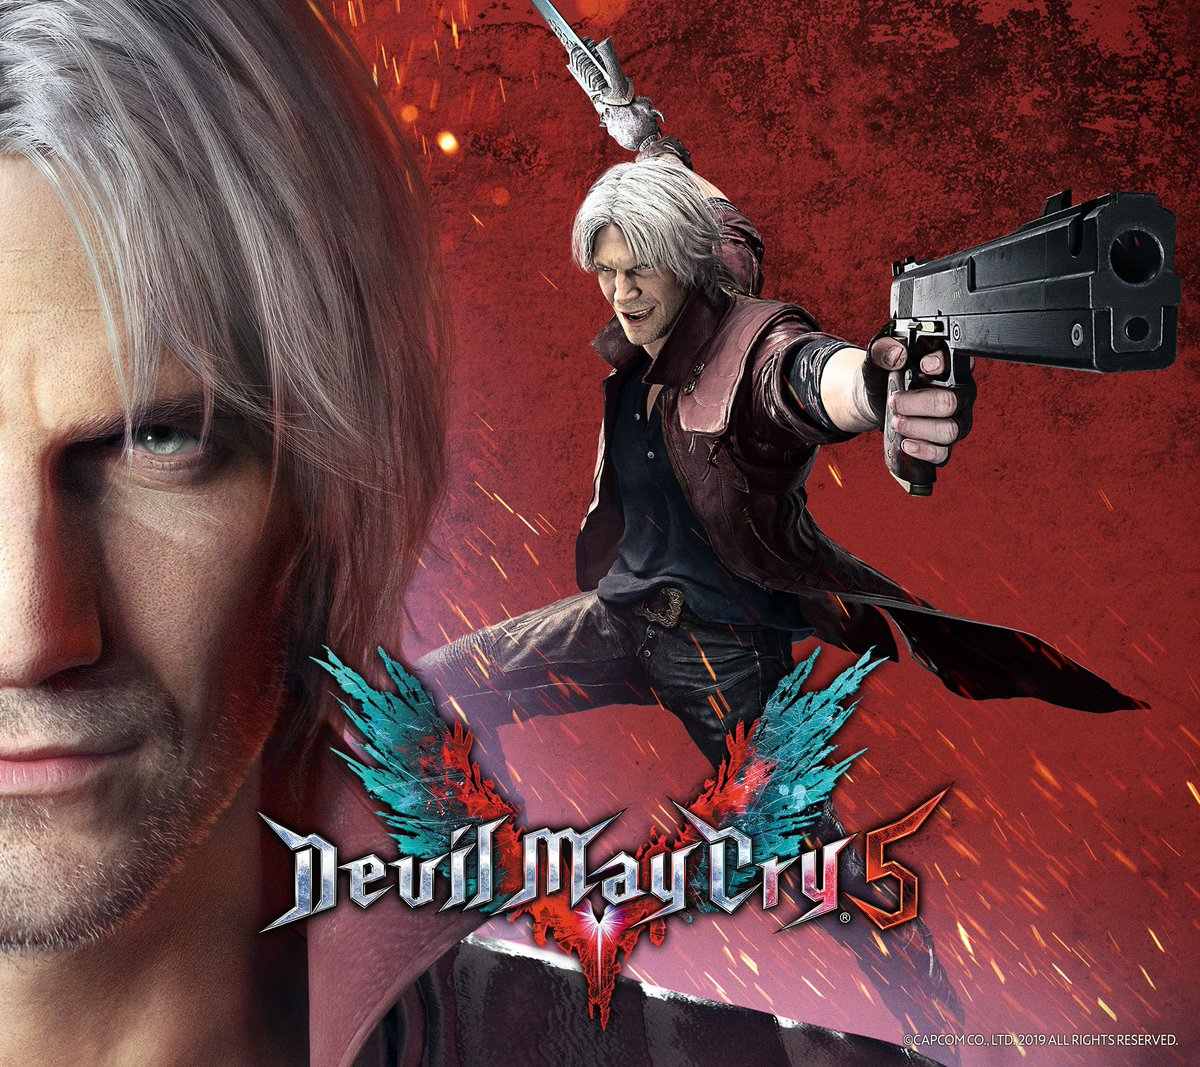 Dante Dmc5 Wallpaper Devil May Cry Photo 42742409 Fanpop